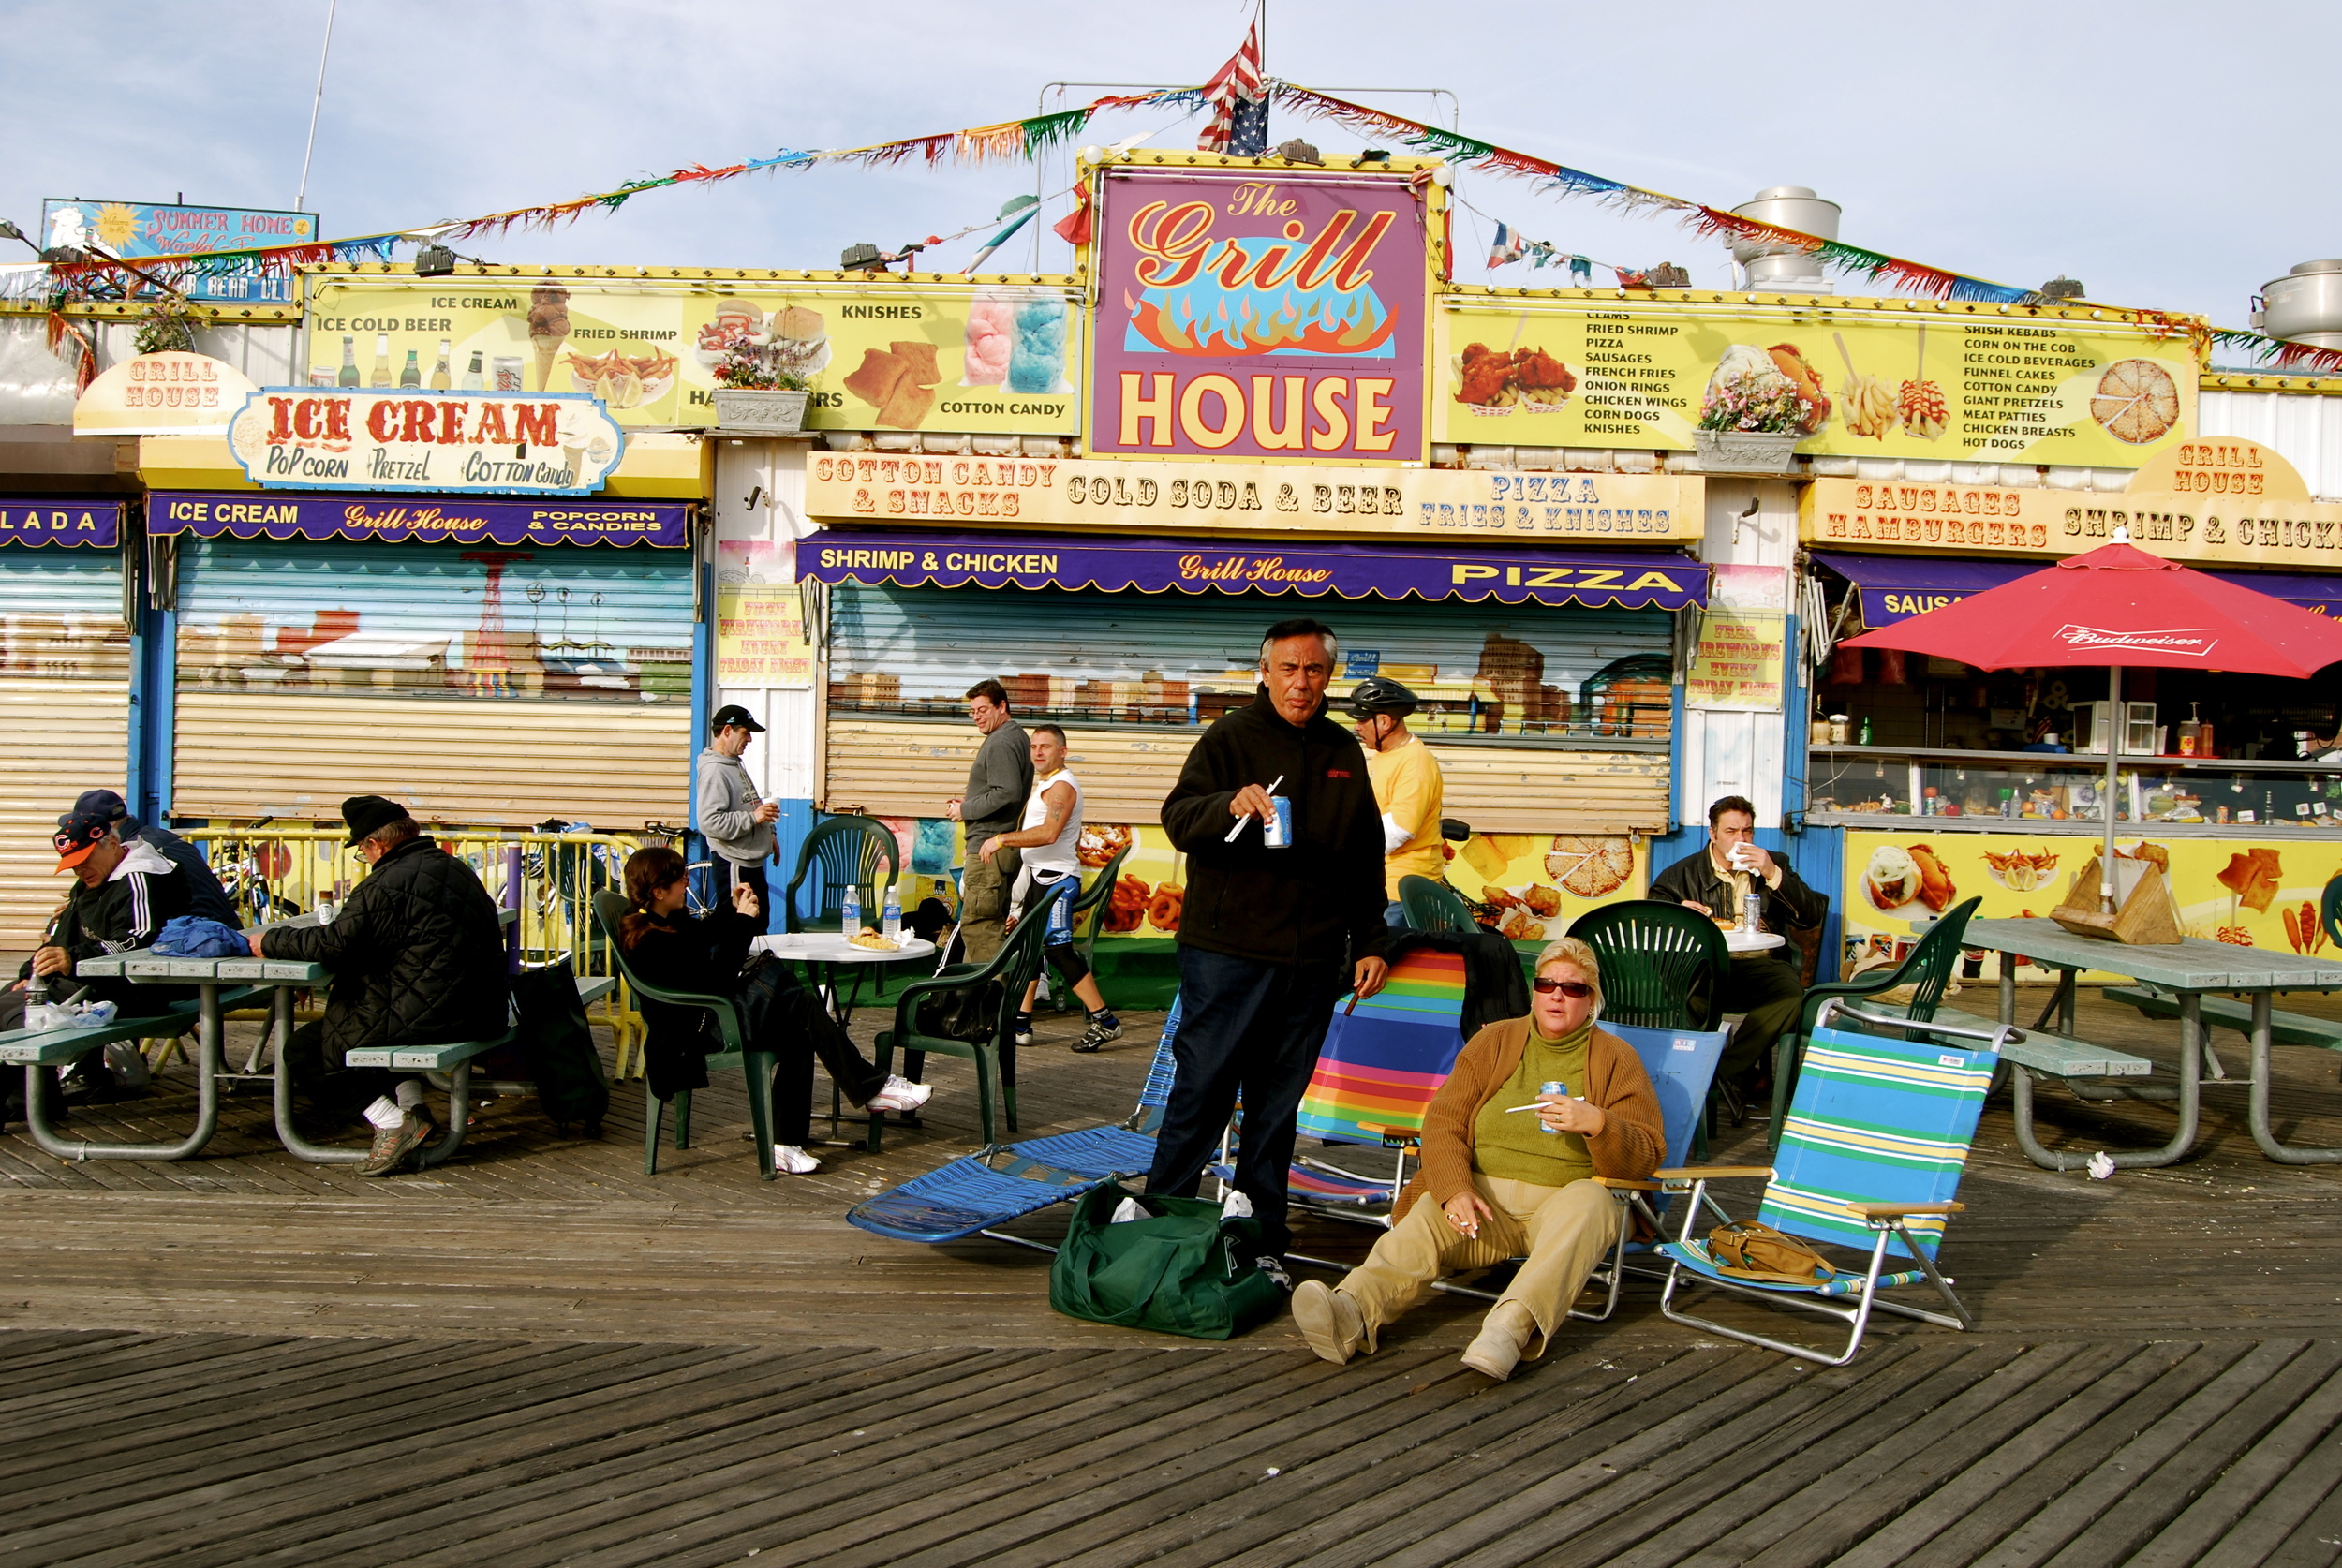 Coney Island, New York. January 2008